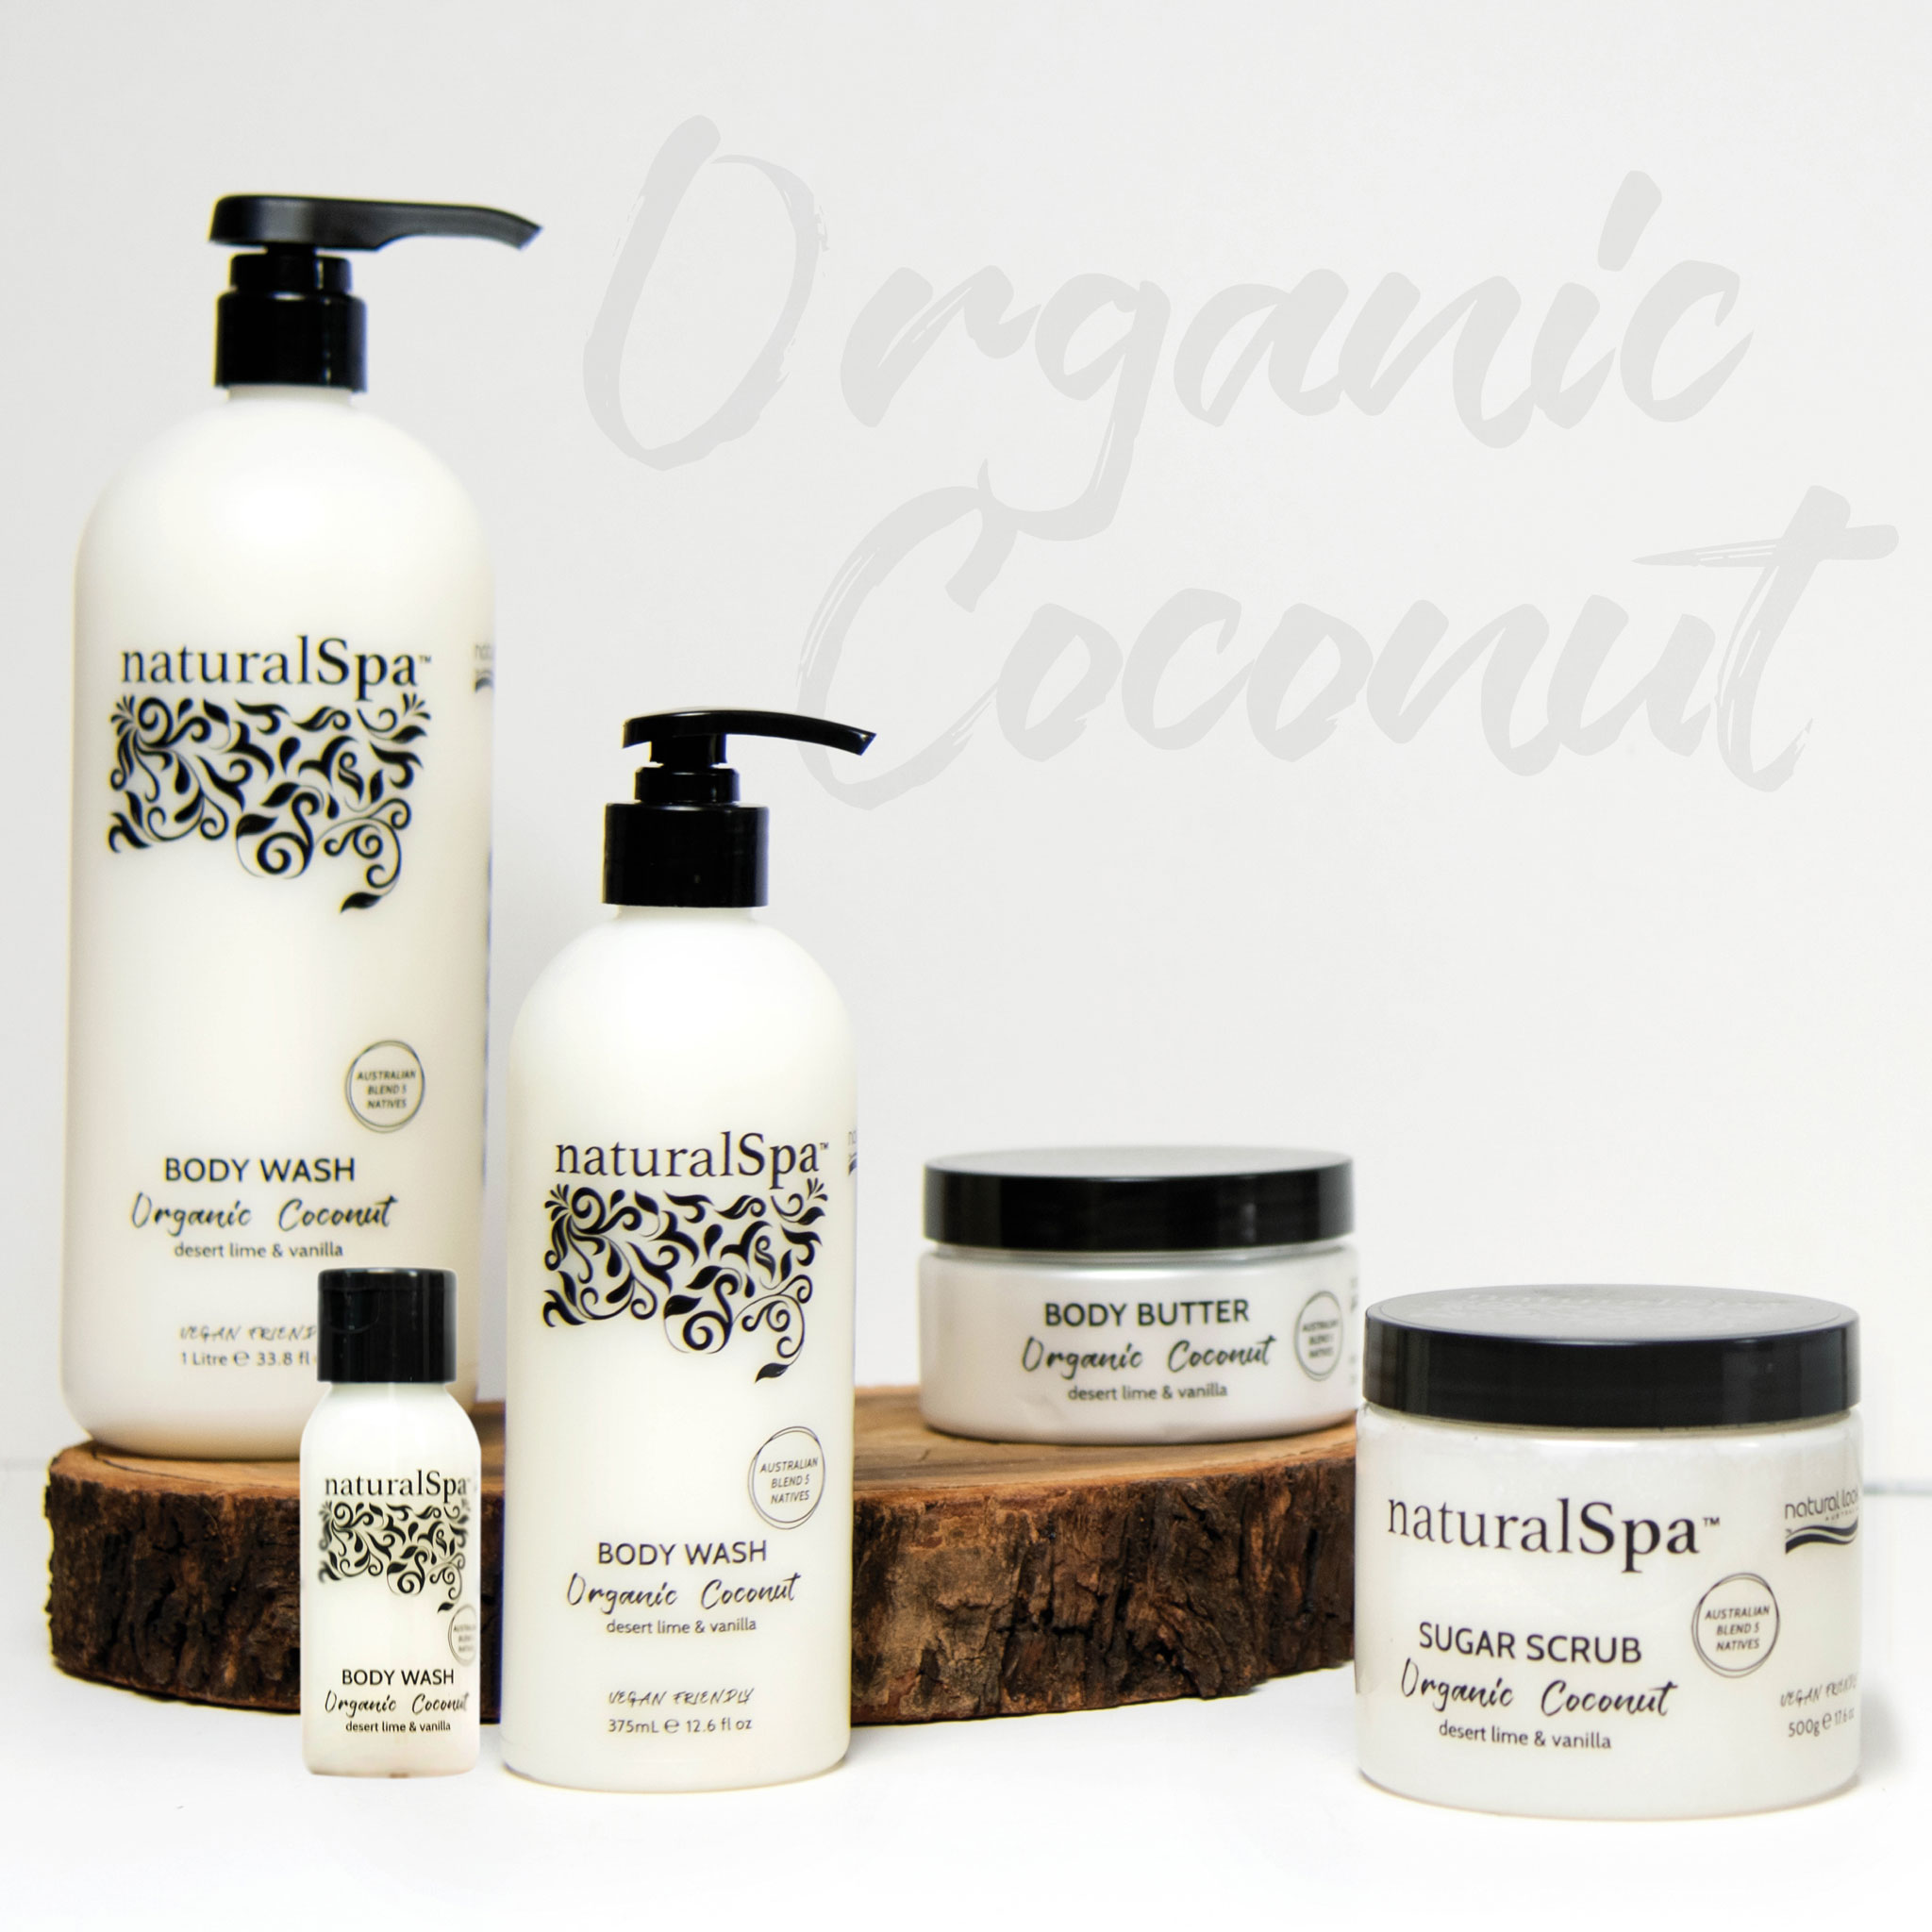 Organic Coconut Products image